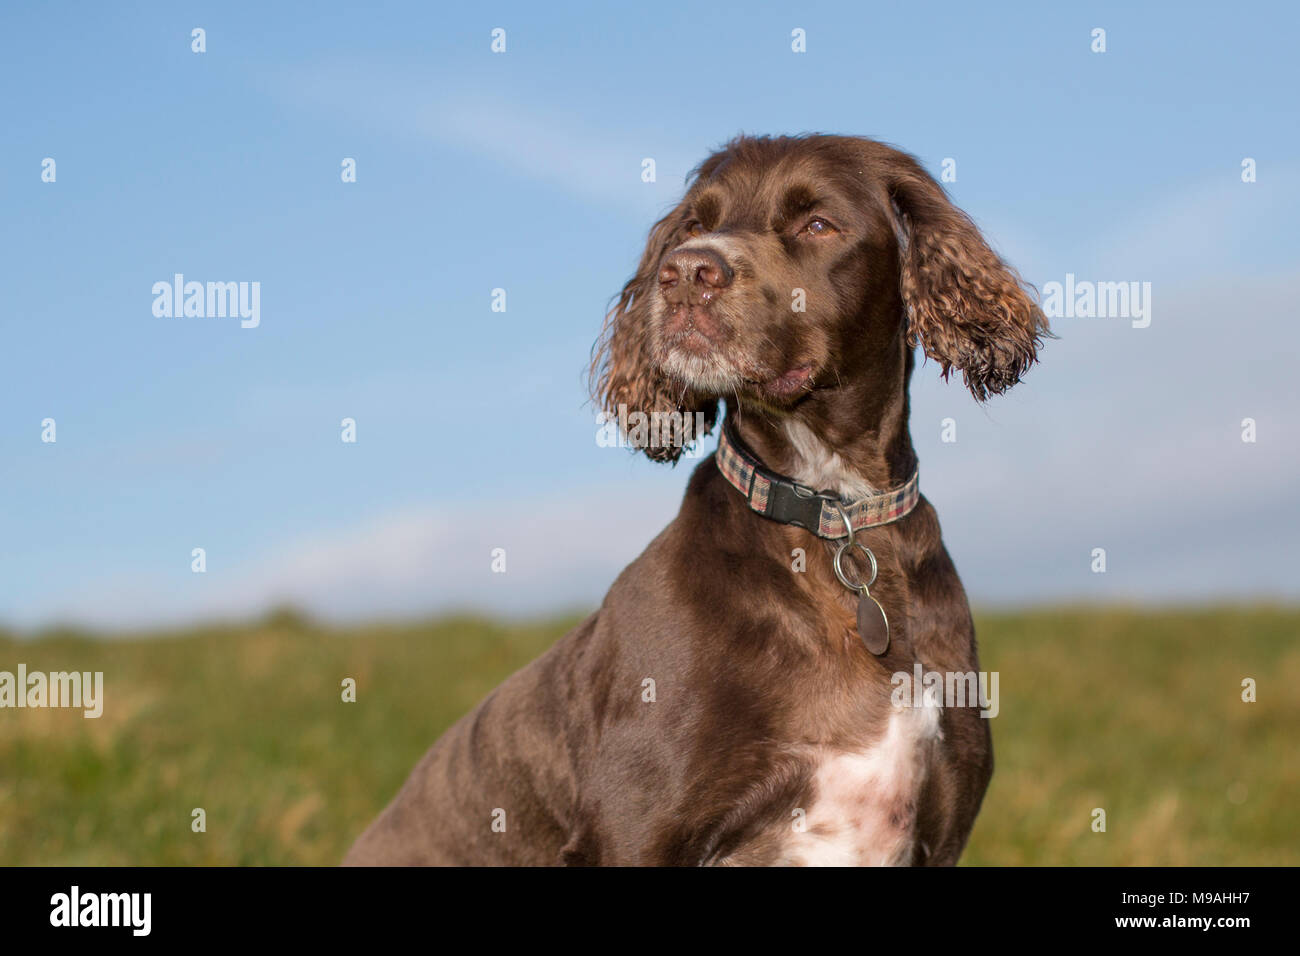 A dog portrait of a pedigree chocolate brown working cockers spaniel head and shoulders outdoor portrait with blue sky background - Stock Image